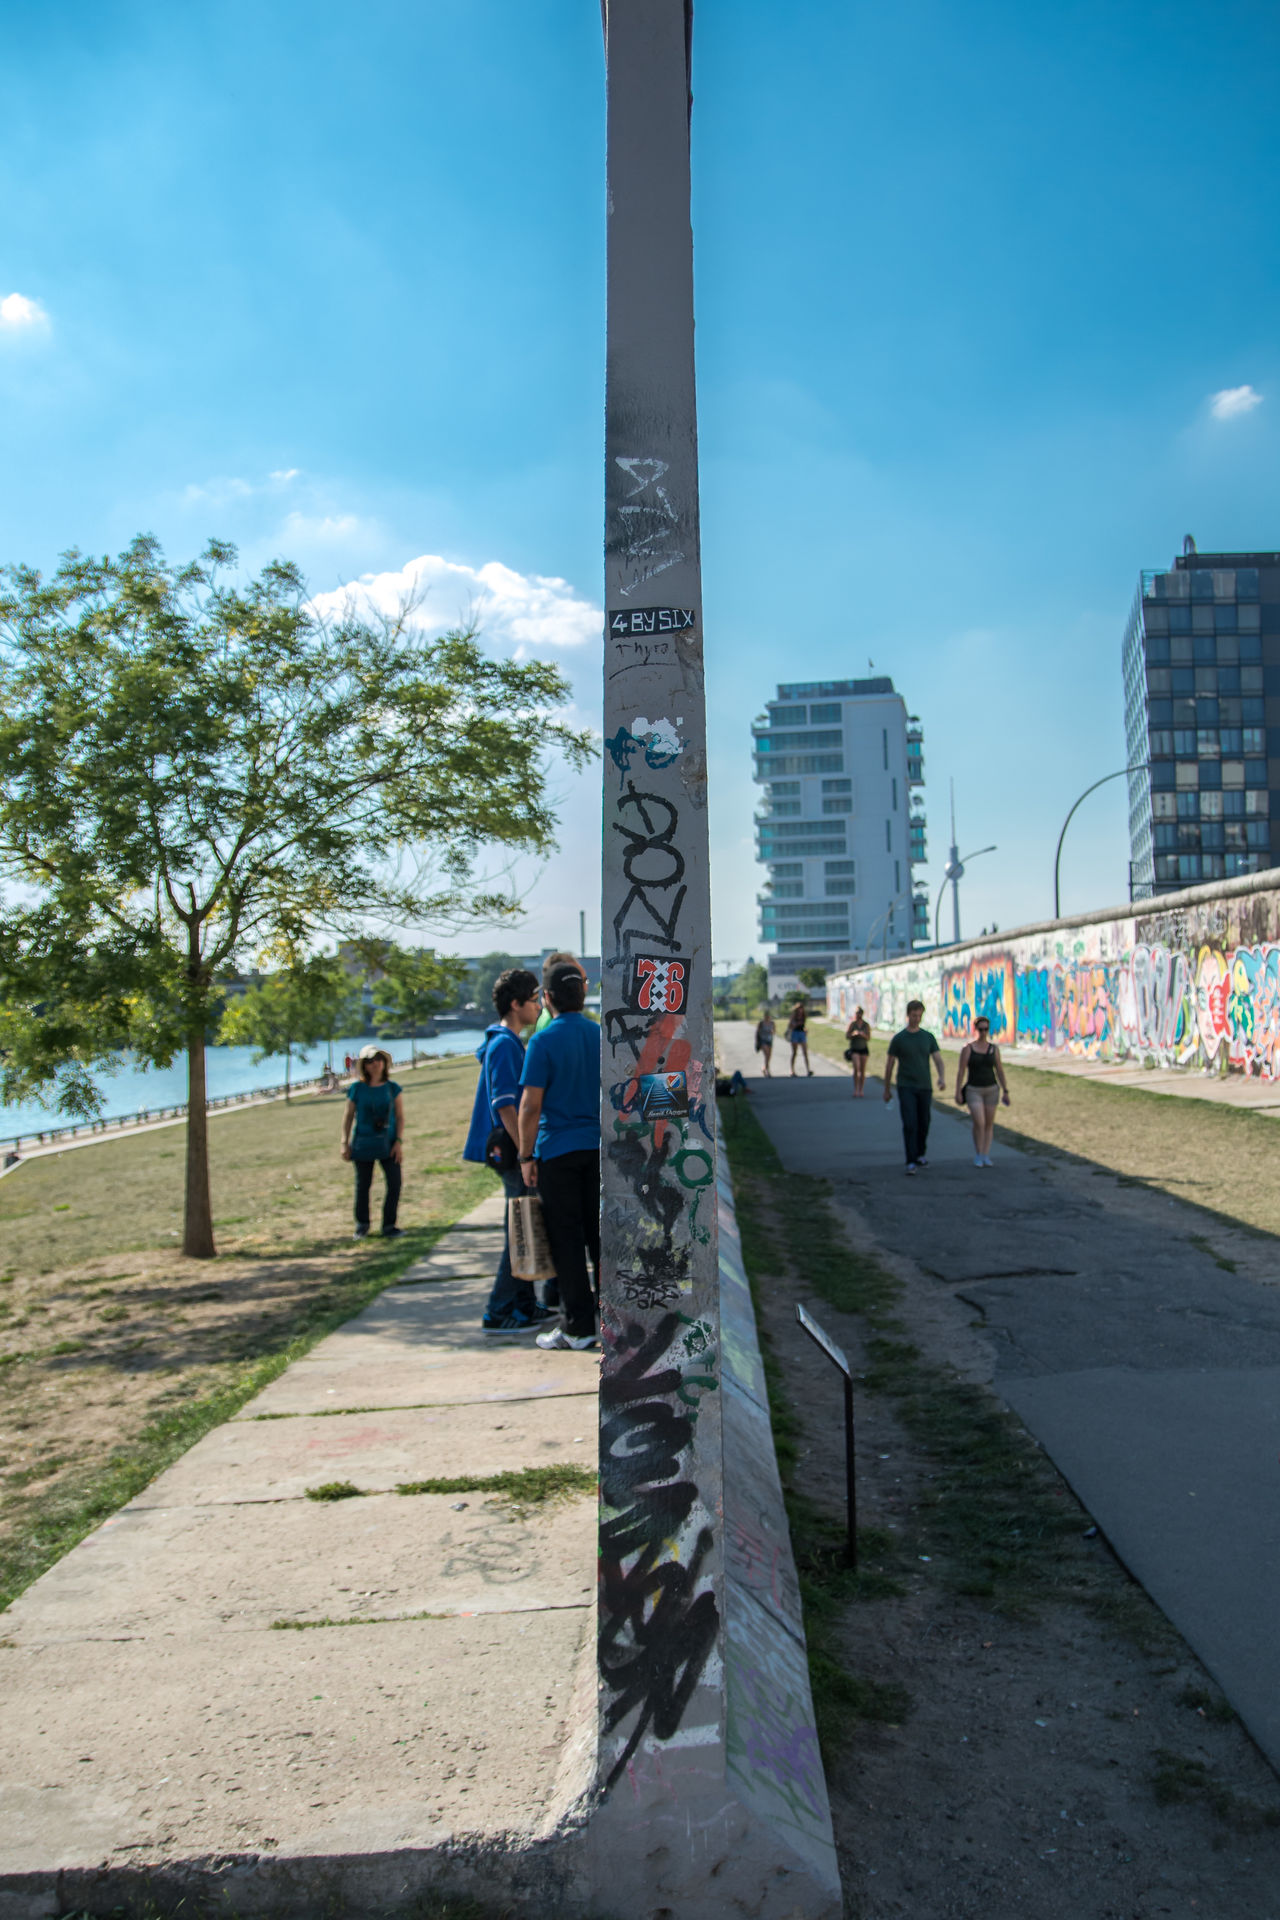 Beautiful stock photos of berliner mauer, real people, built structure, day, architecture